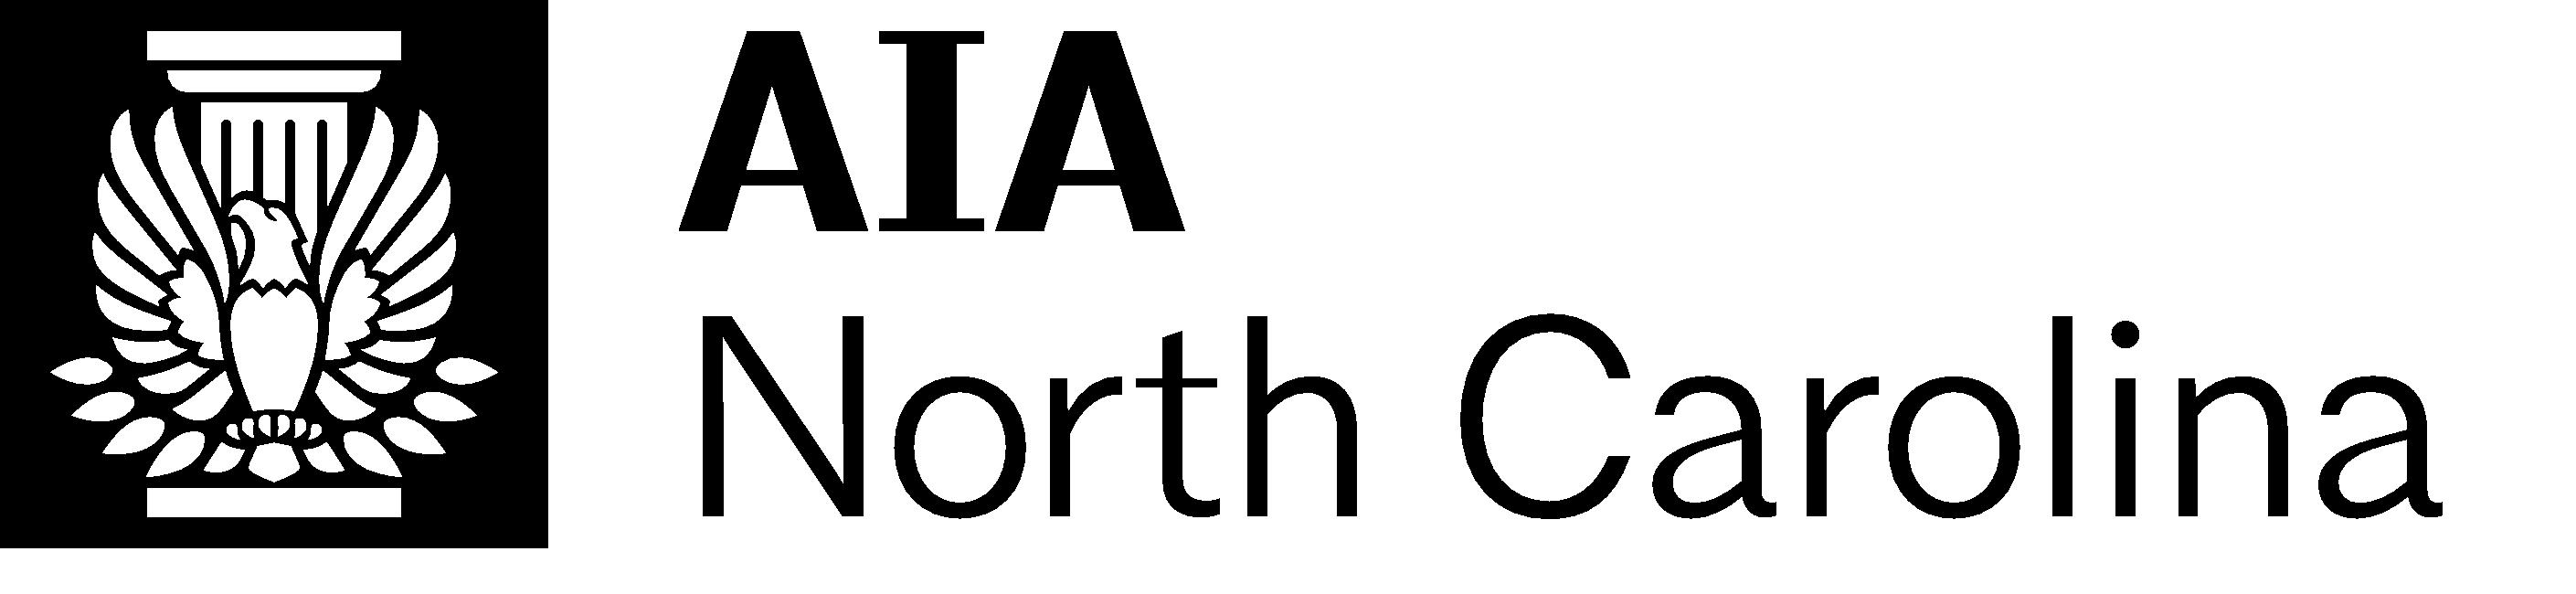 AIA_North_Carolina_logo_k-page-001